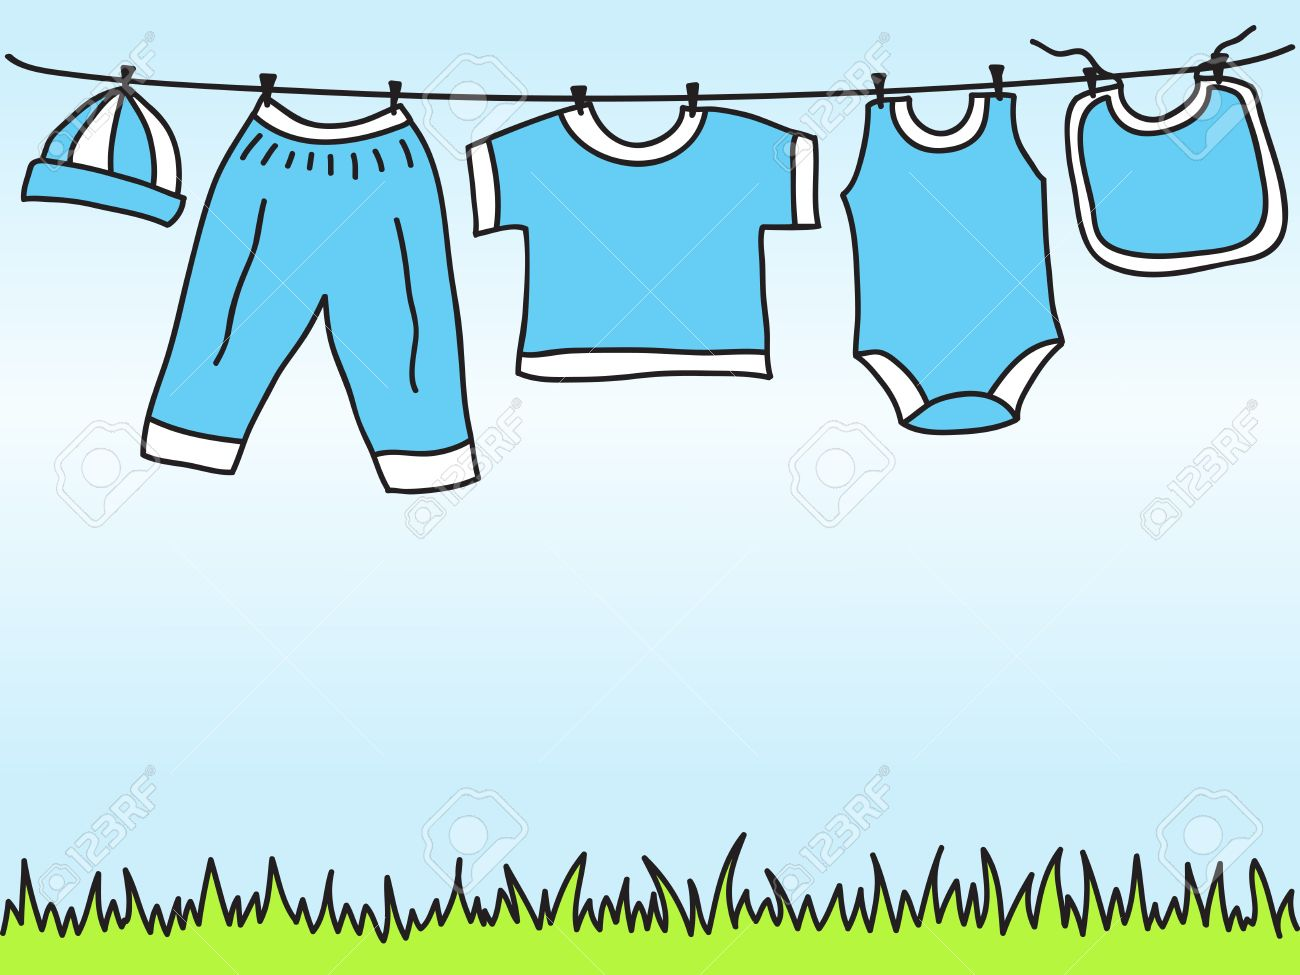 8a1c4ee57 Baby Boy Clothes On Clothesline - Hand Drawn Illustration Royalty ...